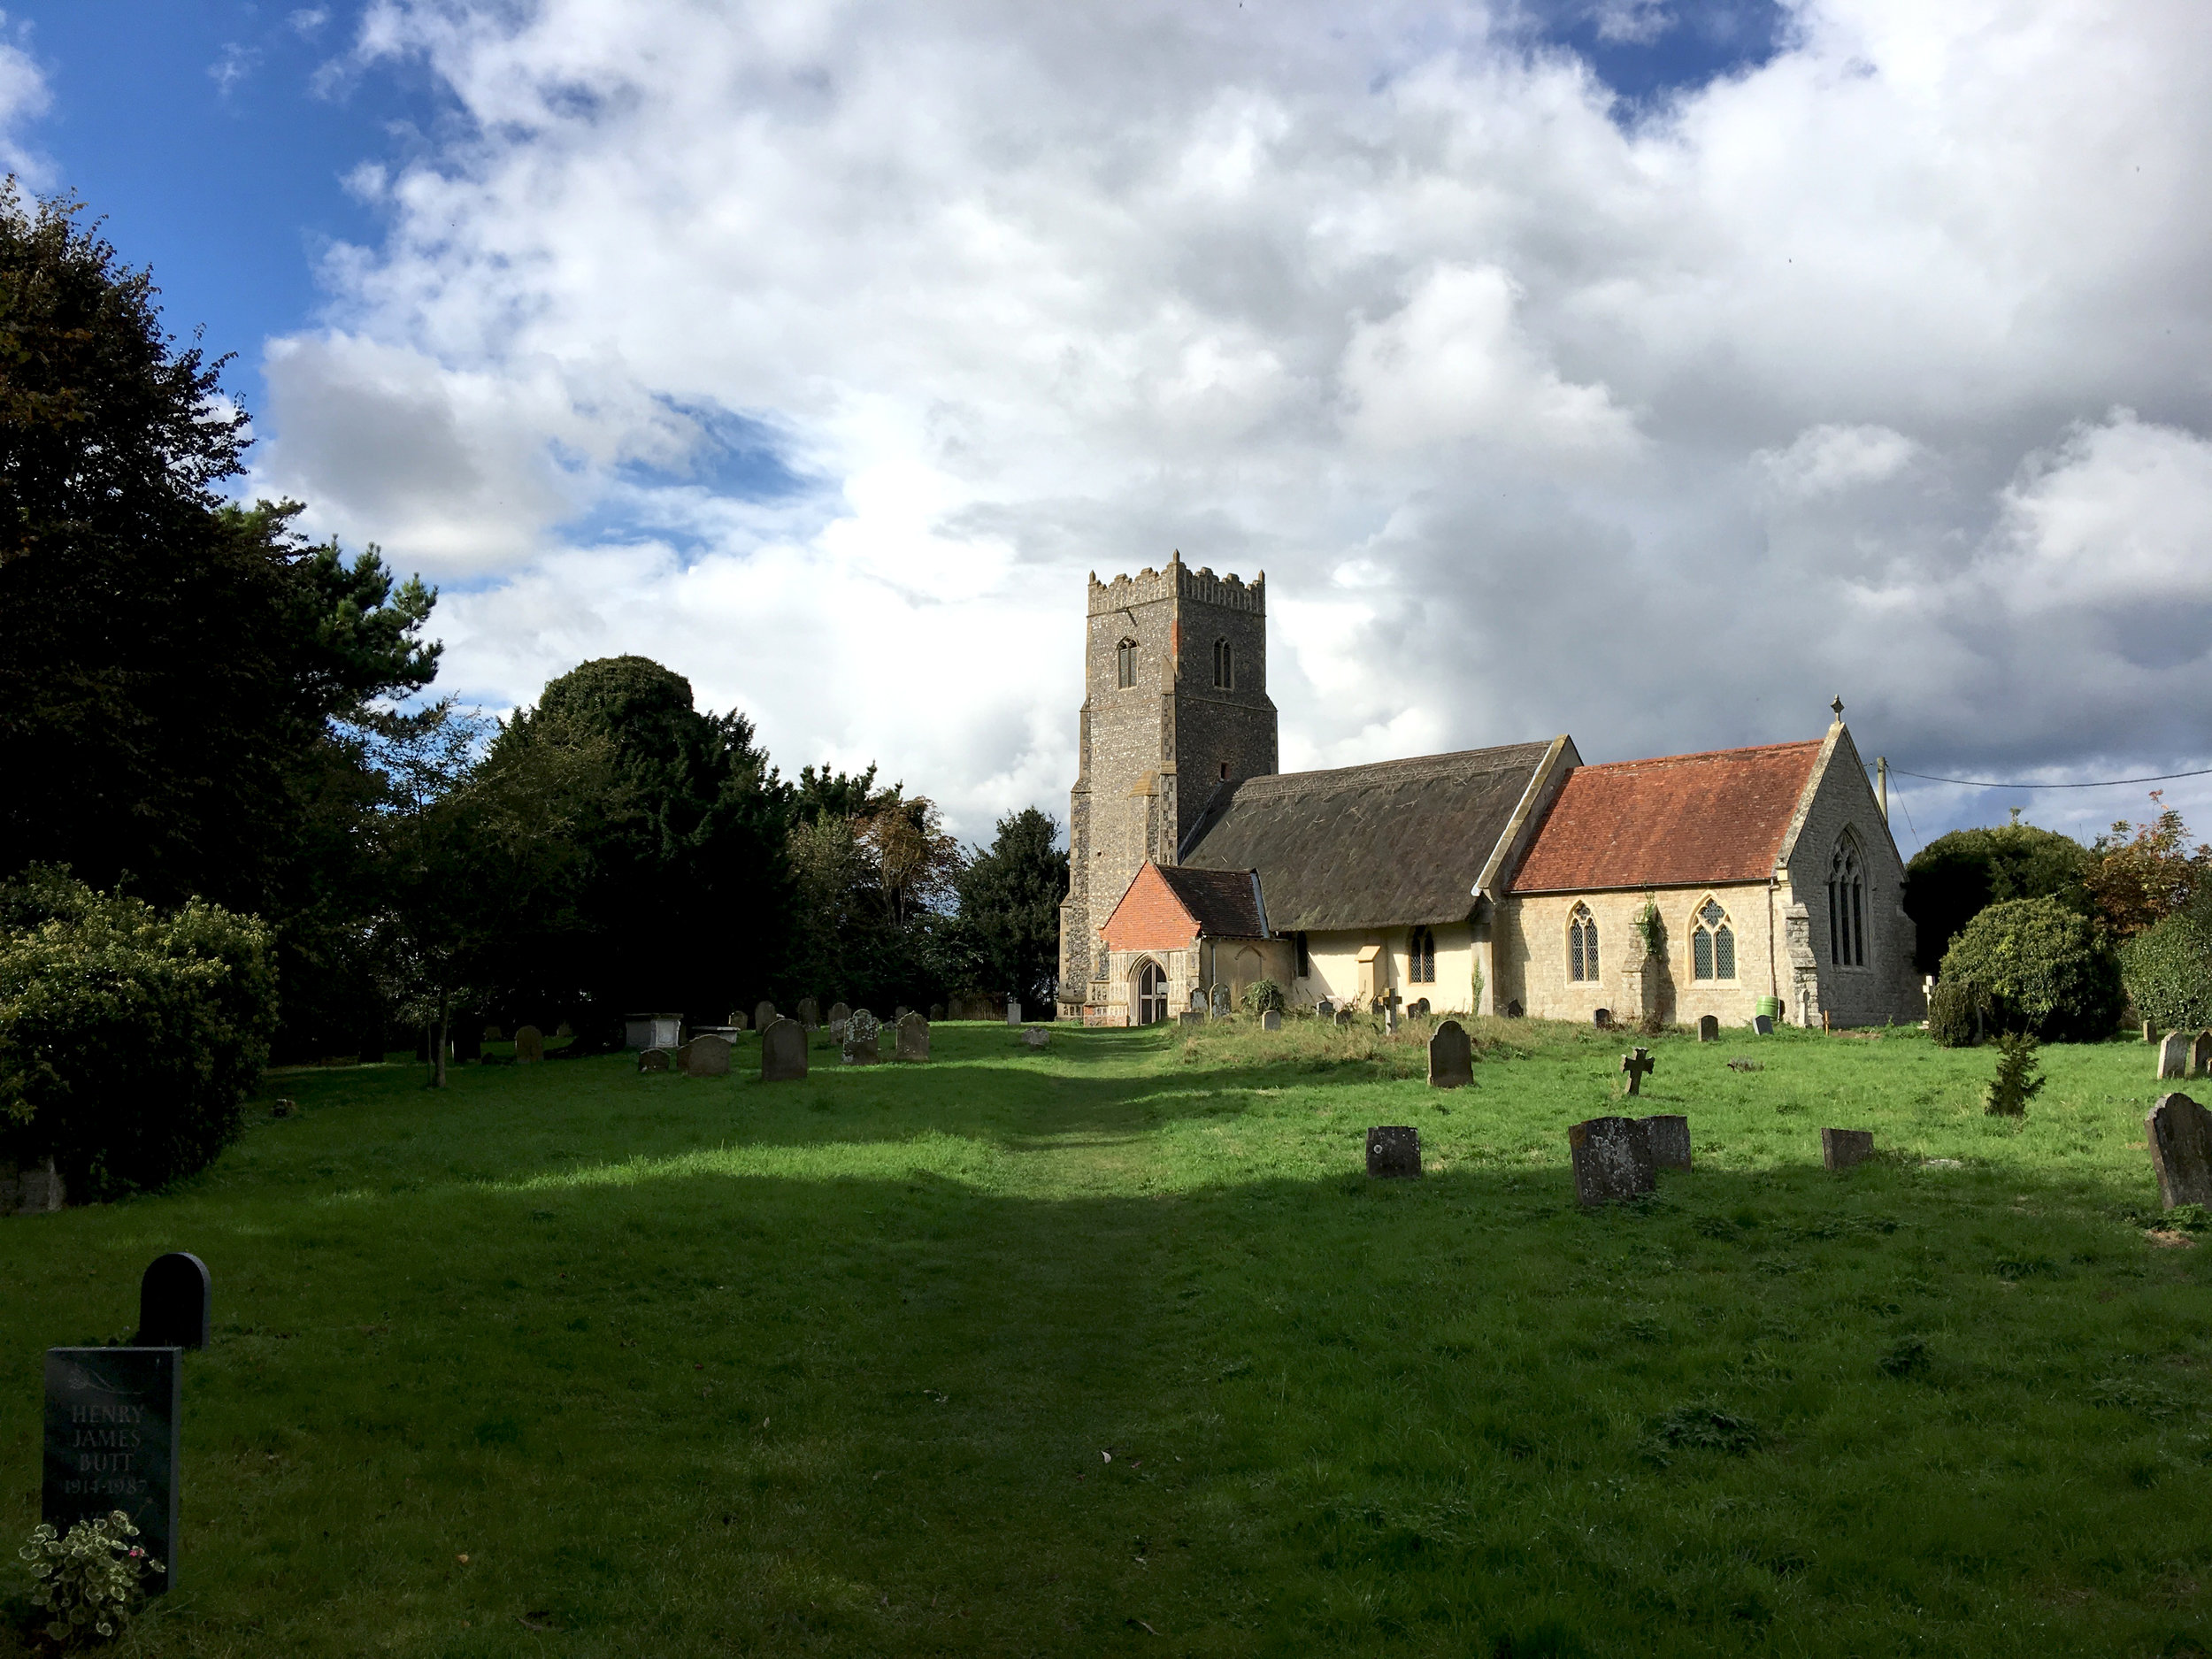 The church at Iken. I had no idea that churches like this one in most English villages are identical.